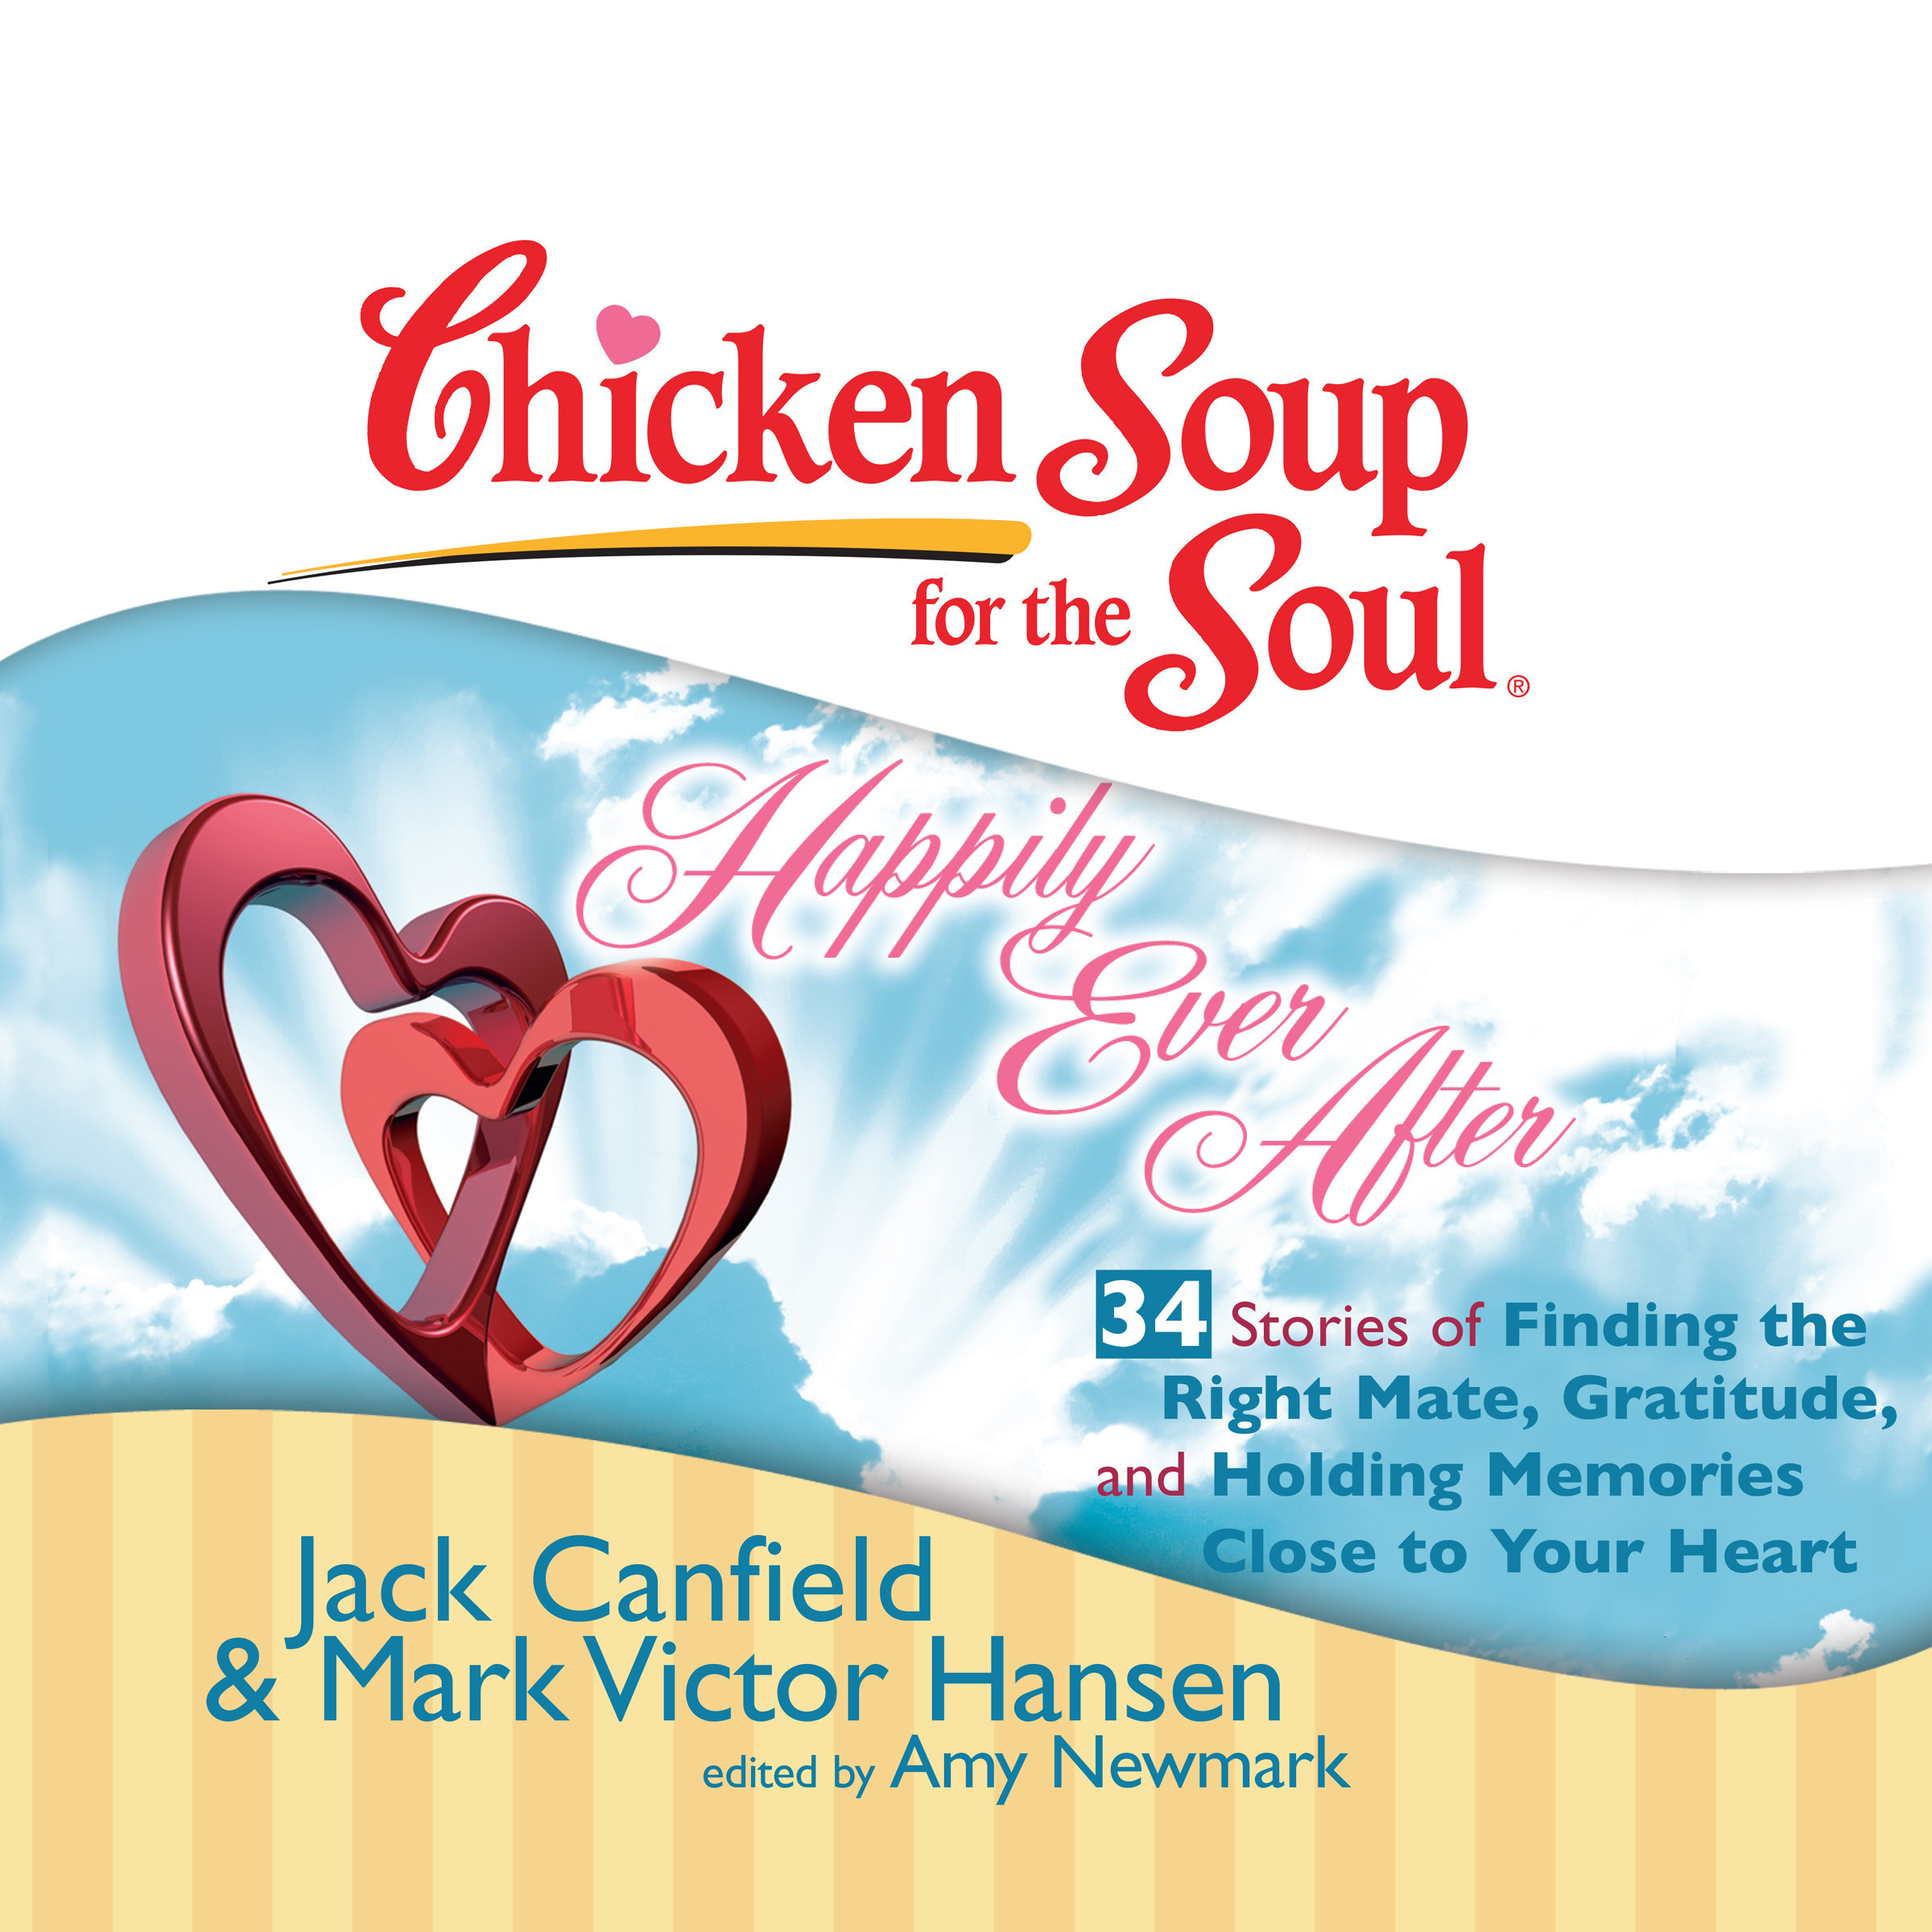 Printable Chicken Soup for the Soul: Happily Ever After - 34 Stories of Finding the Right Mate, Gratitude, and Holding Memories Close to Y Audiobook Cover Art